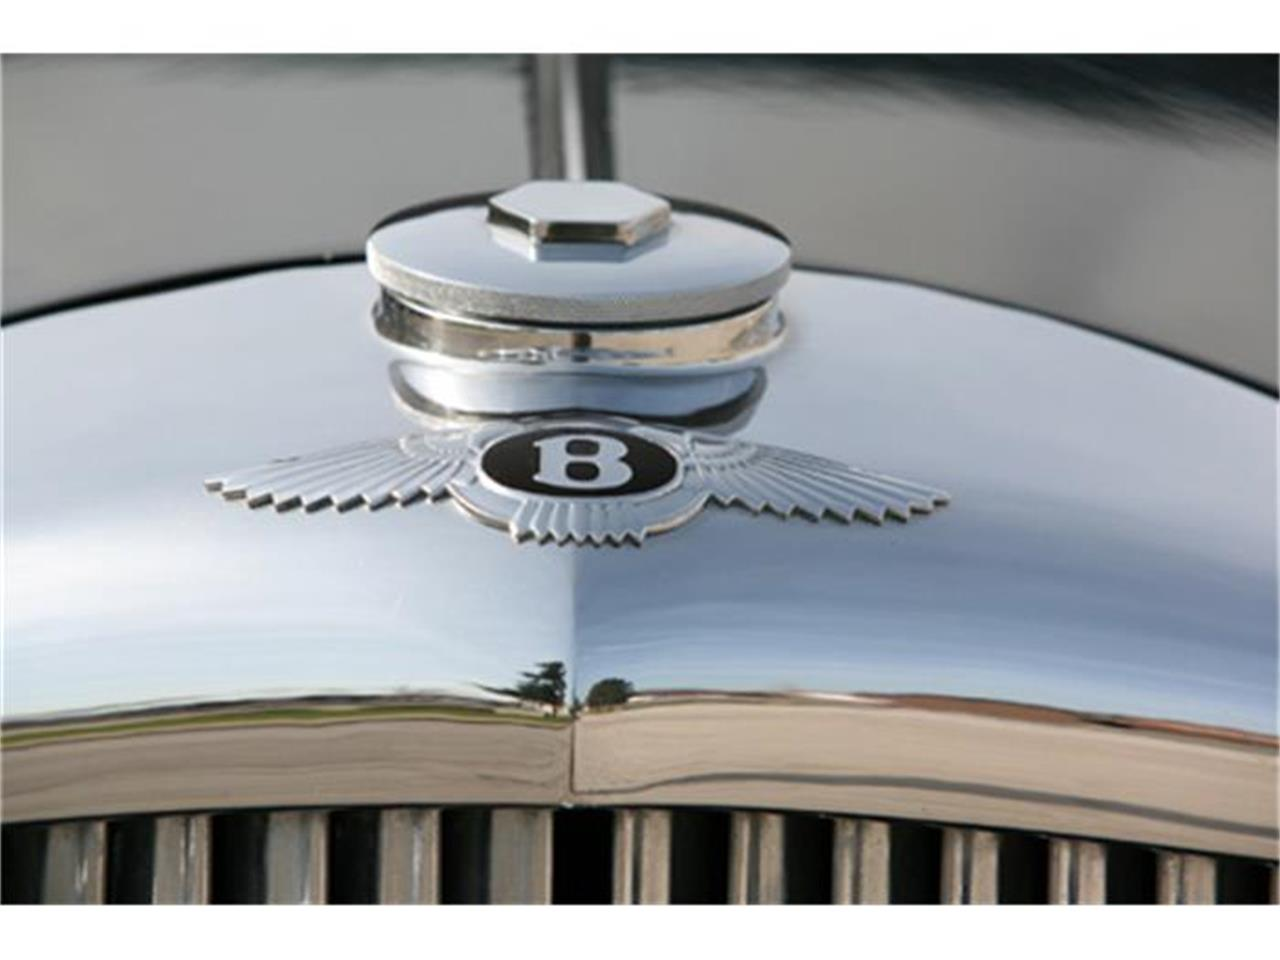 Large Picture of Classic 1948 Mark IV 2 door James Young Coupe - $54,900.00 Offered by Vintage Motor Cars USA - D9XP